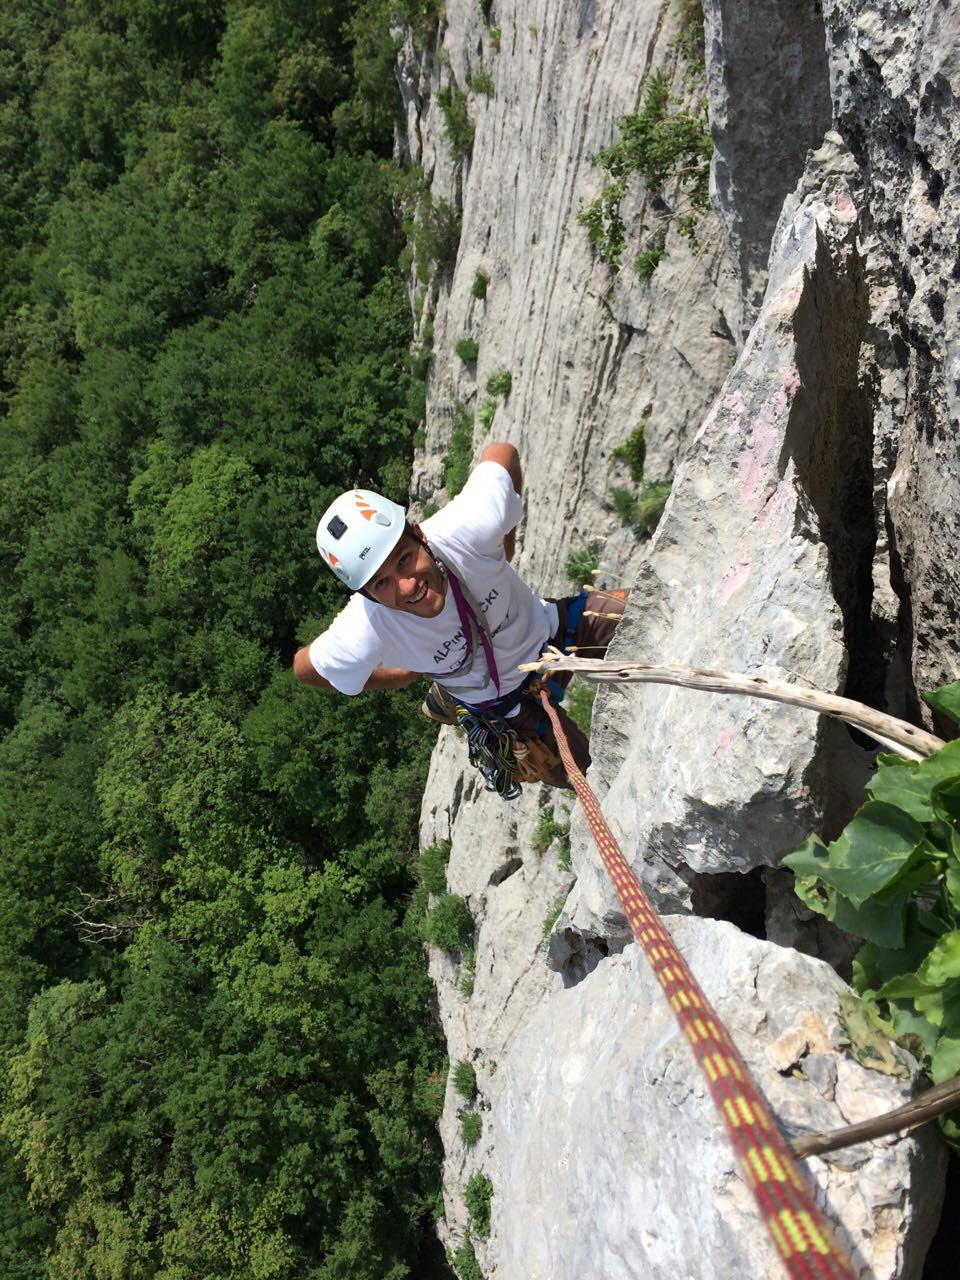 Smokovac Free Climbing, photo by Mico Cerovic